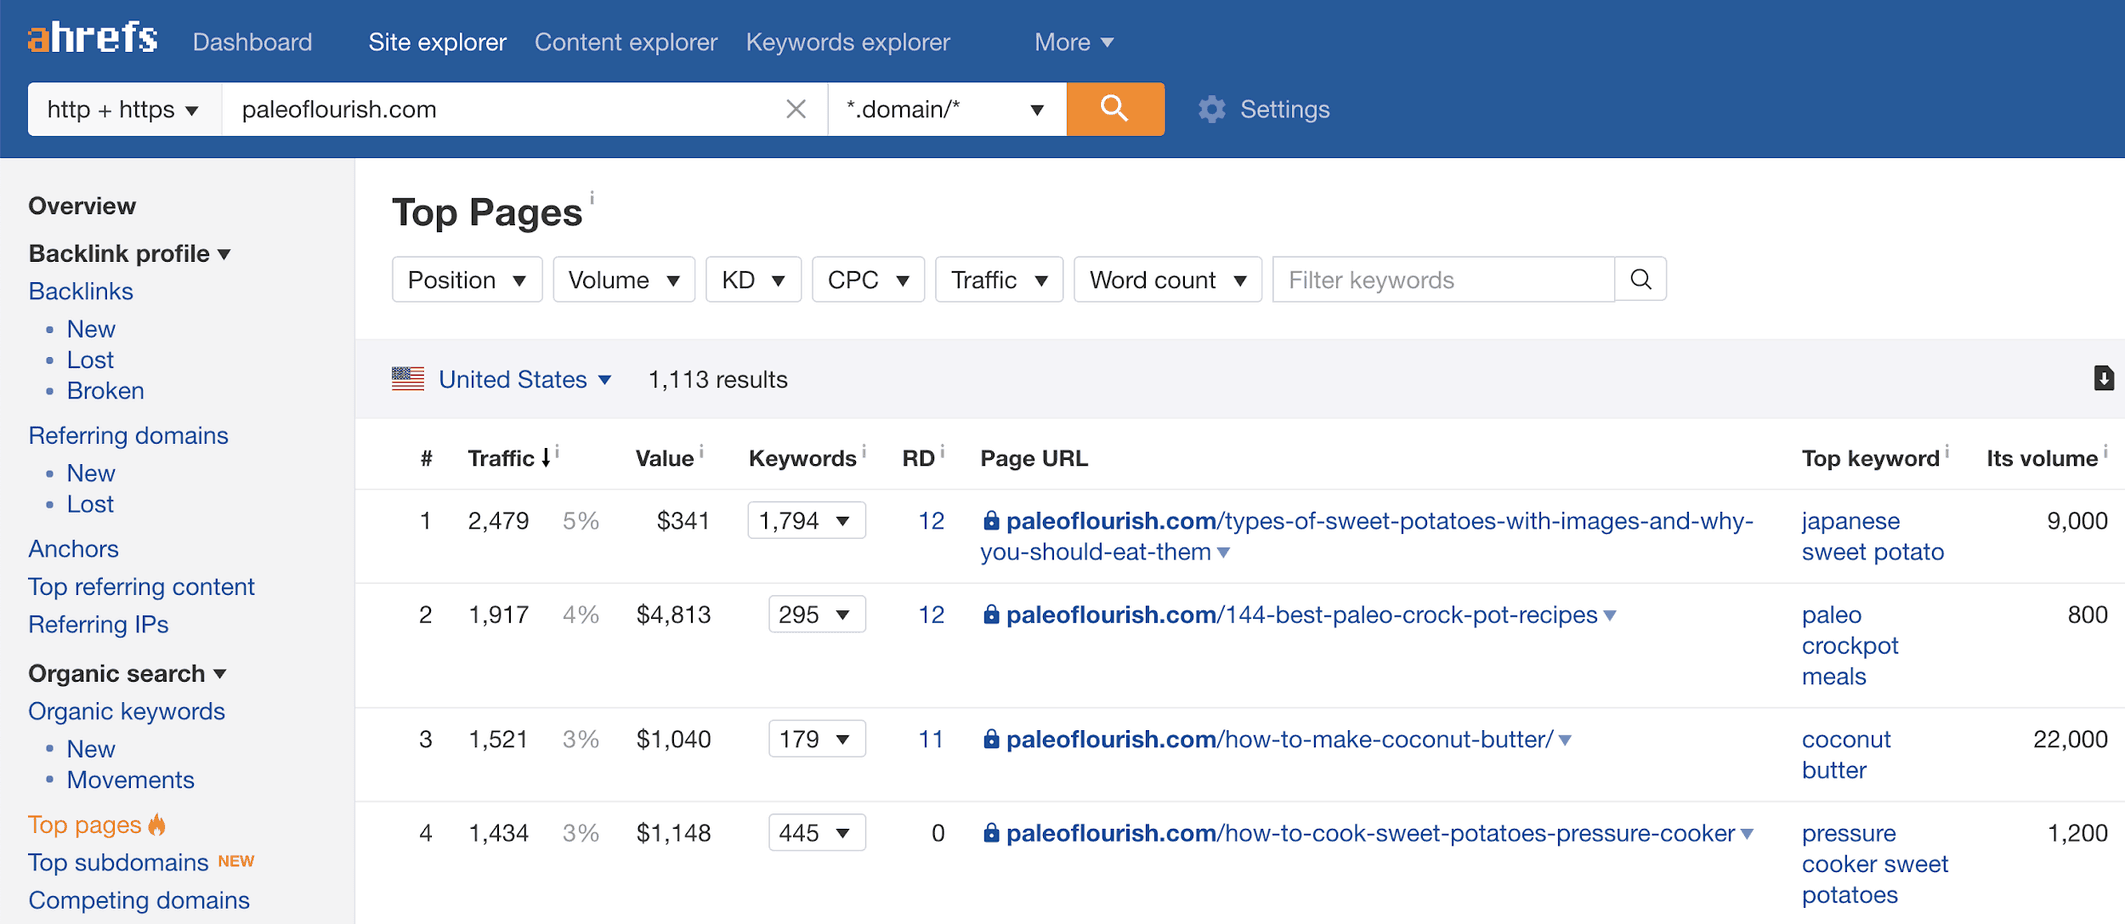 Ahrefs' top pages